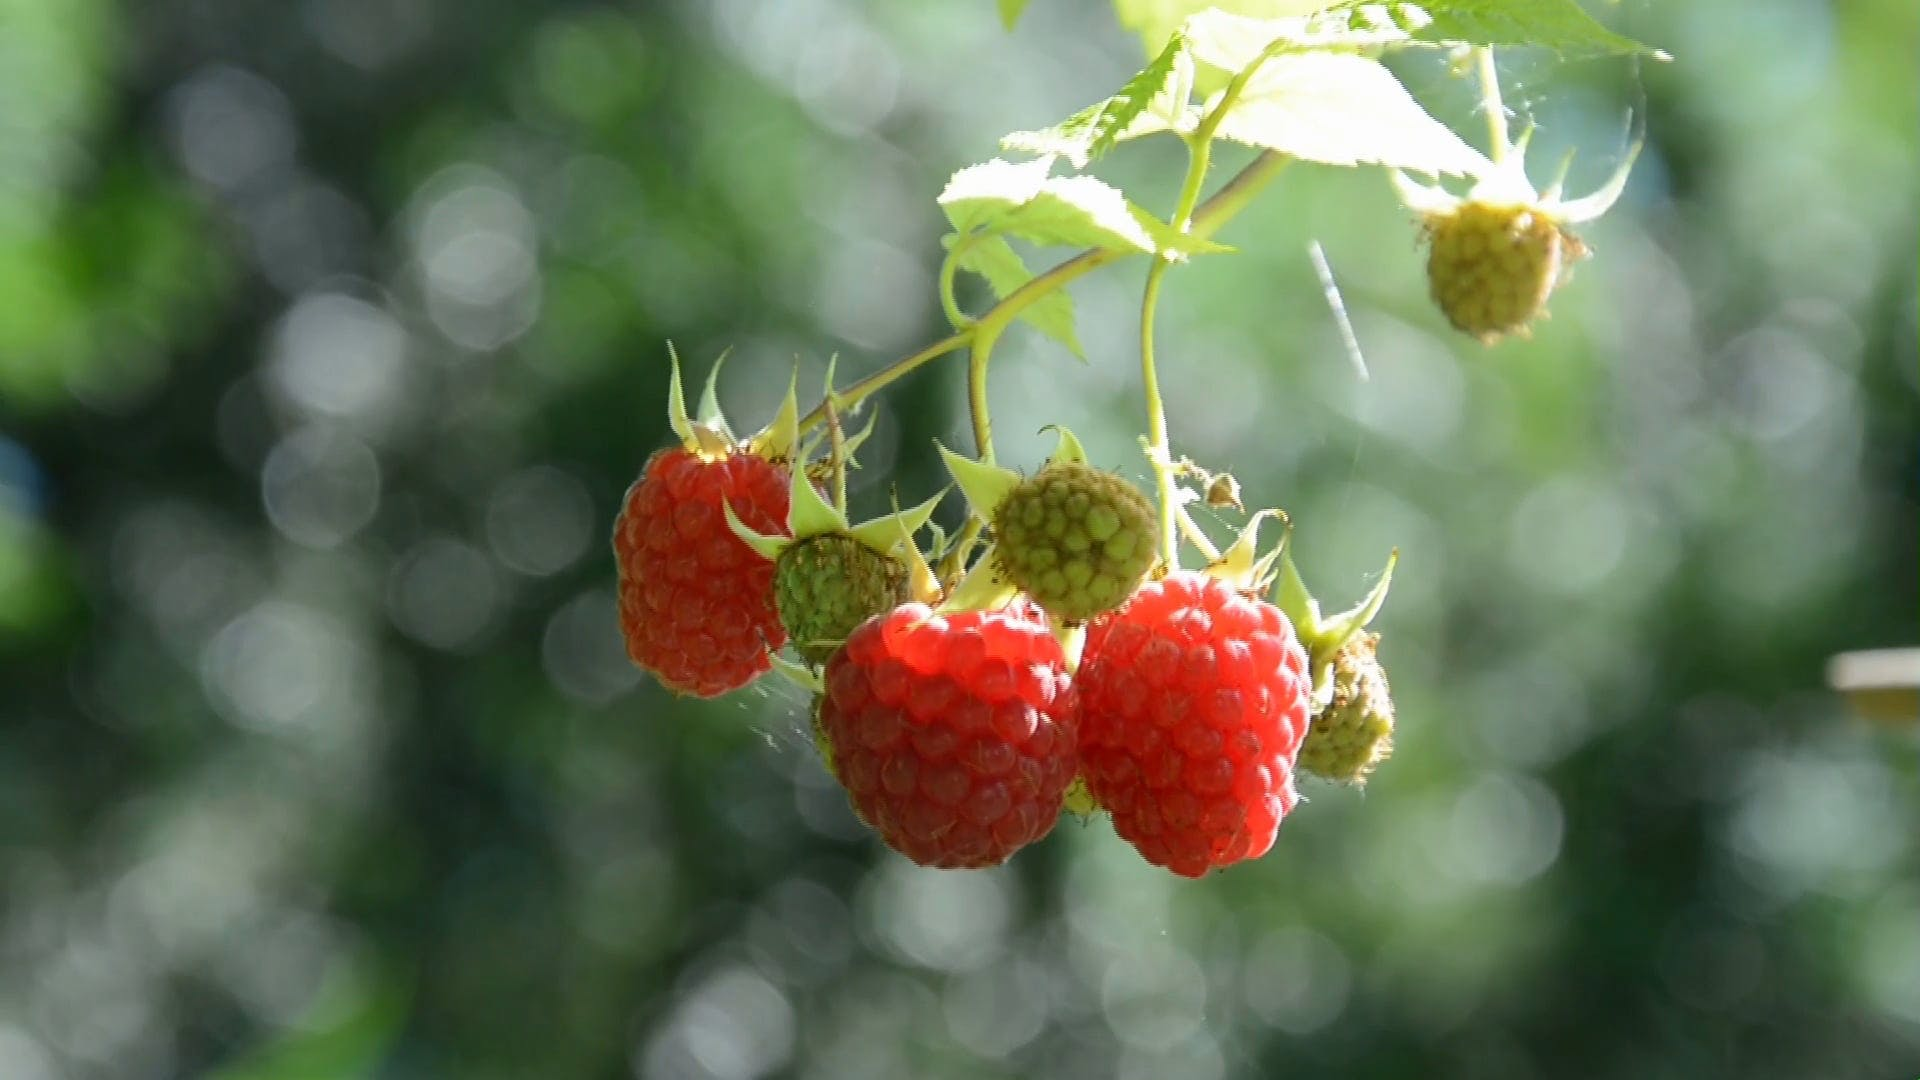 Close Up Video Of Raspberries